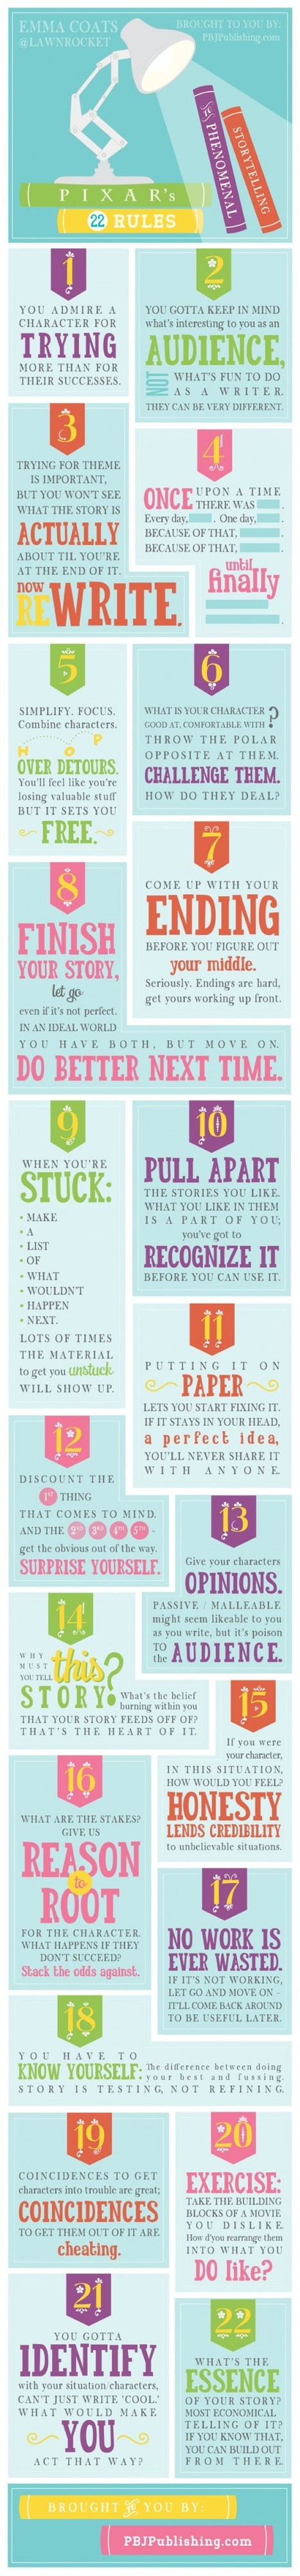 Pixar's 22 Rules to Phenomenal Storytelling [INFOGRAPHIC] | Cuistot des Médias Sociaux | Scoop.it